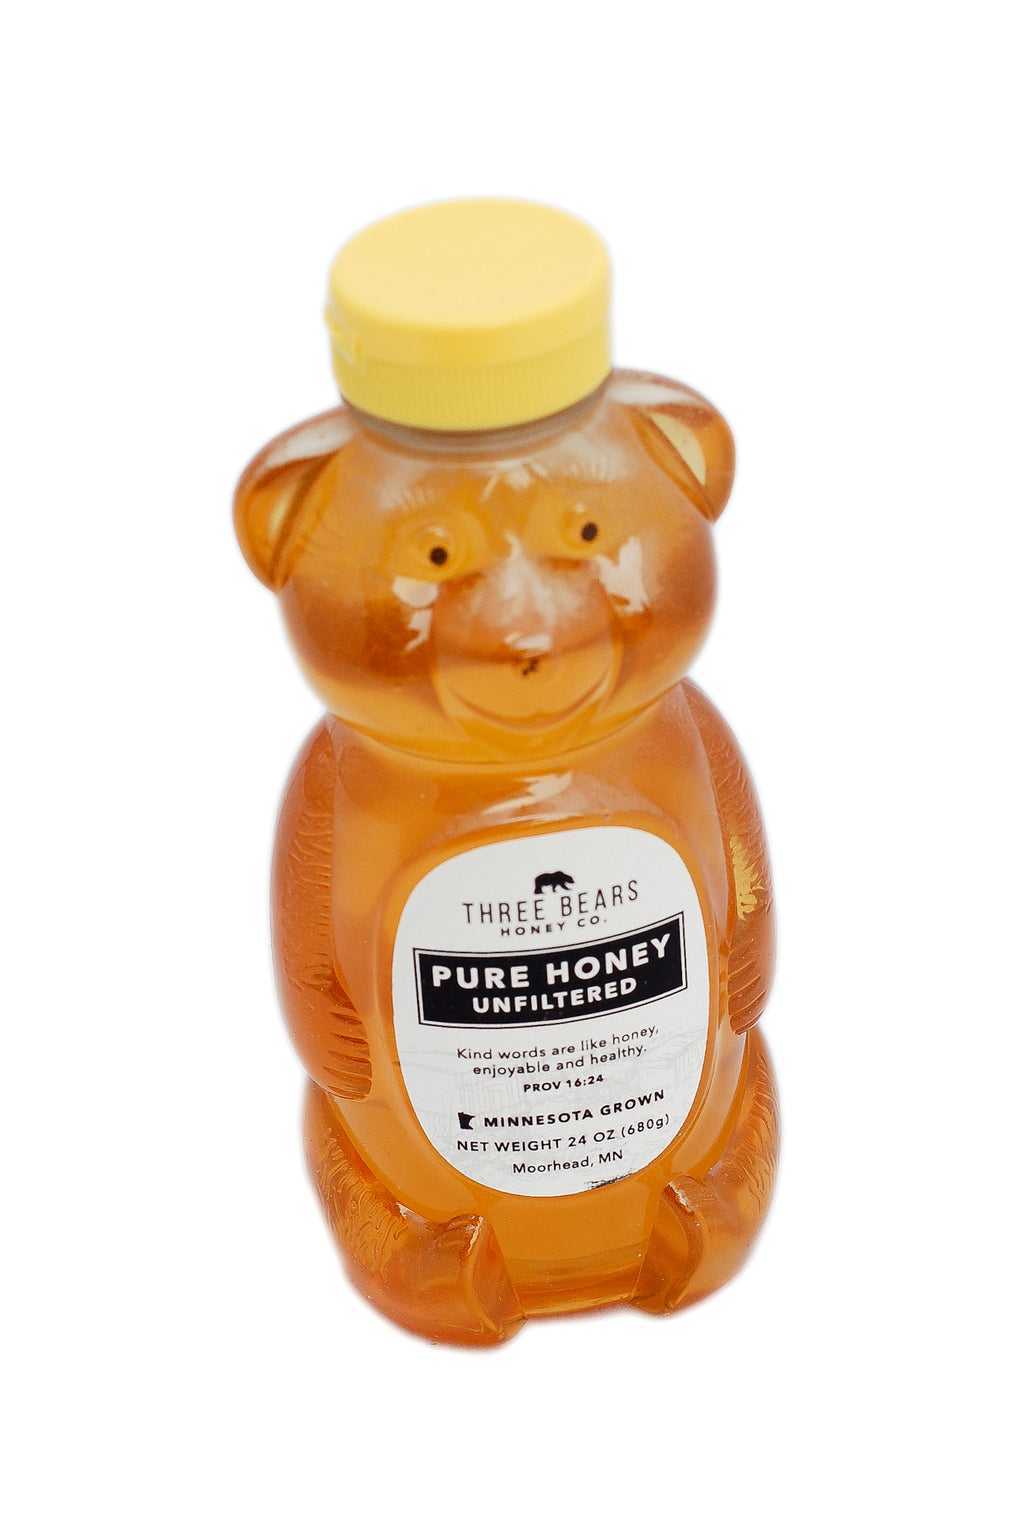 Three Bears Honey